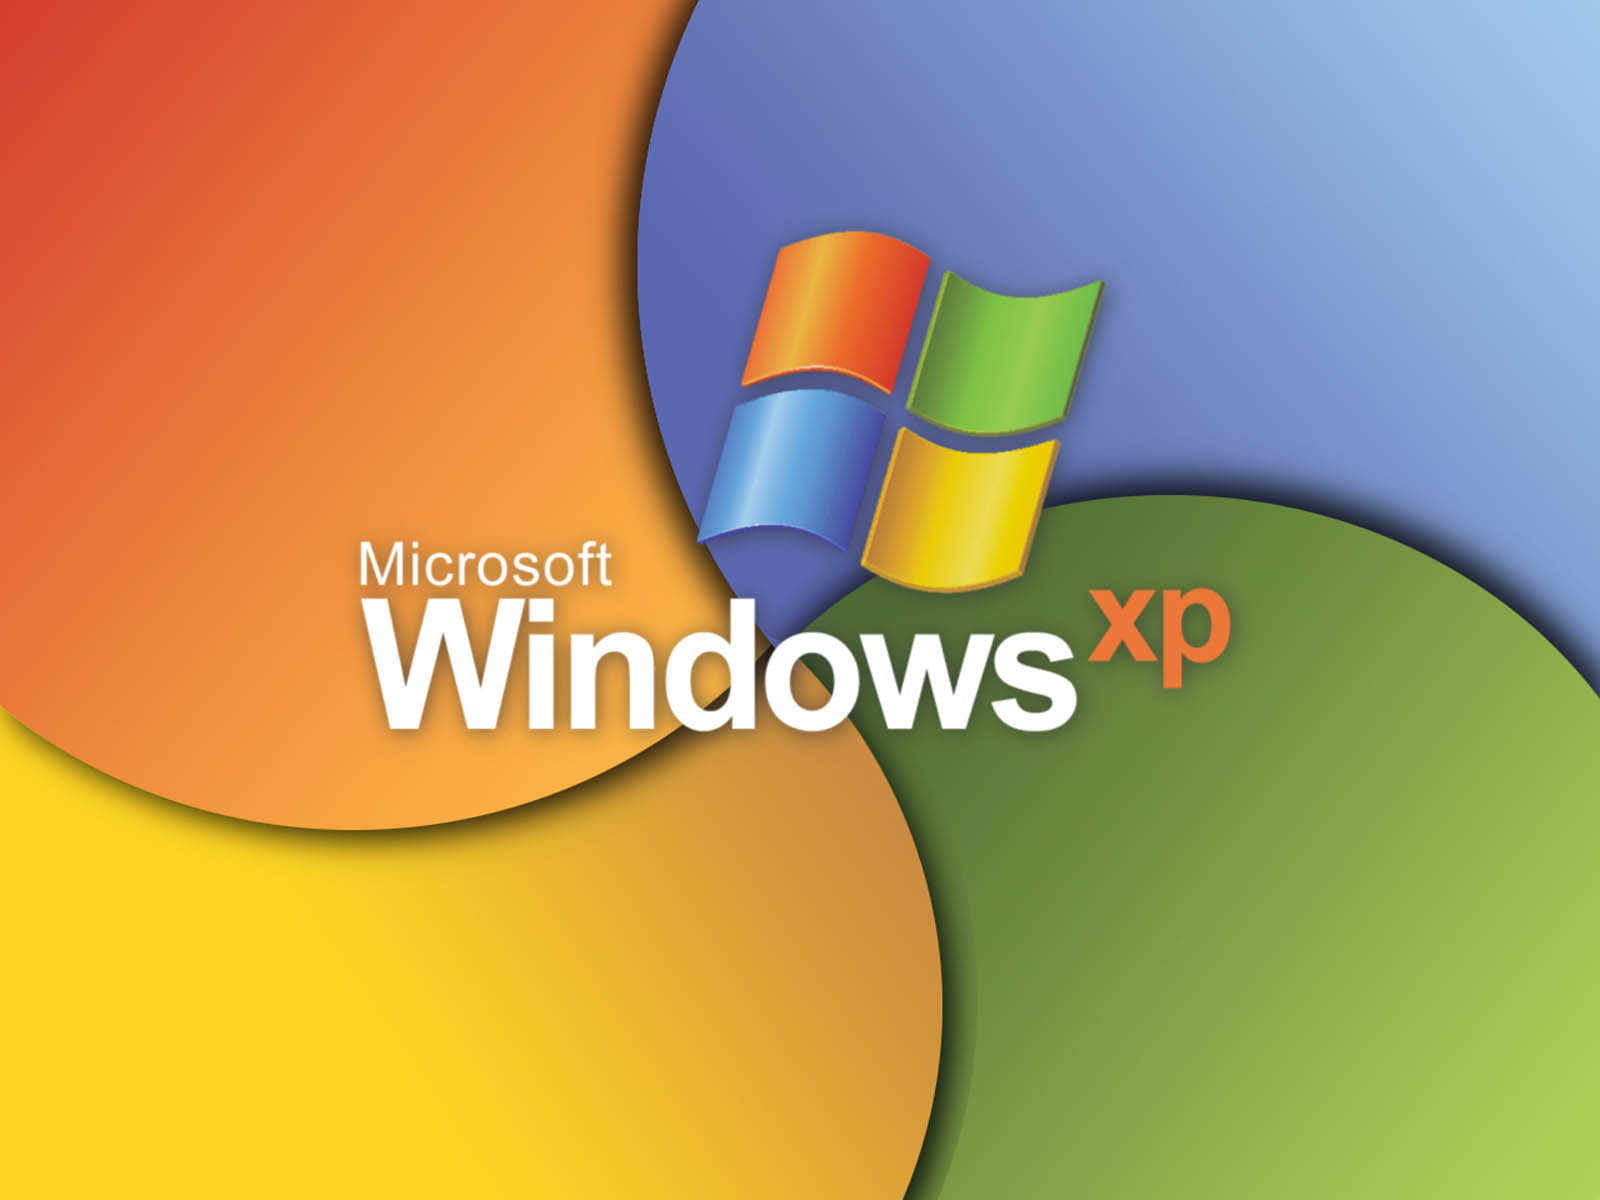 windows xp desktop wallpapers images photos pictures and backgrounds 1600x1200